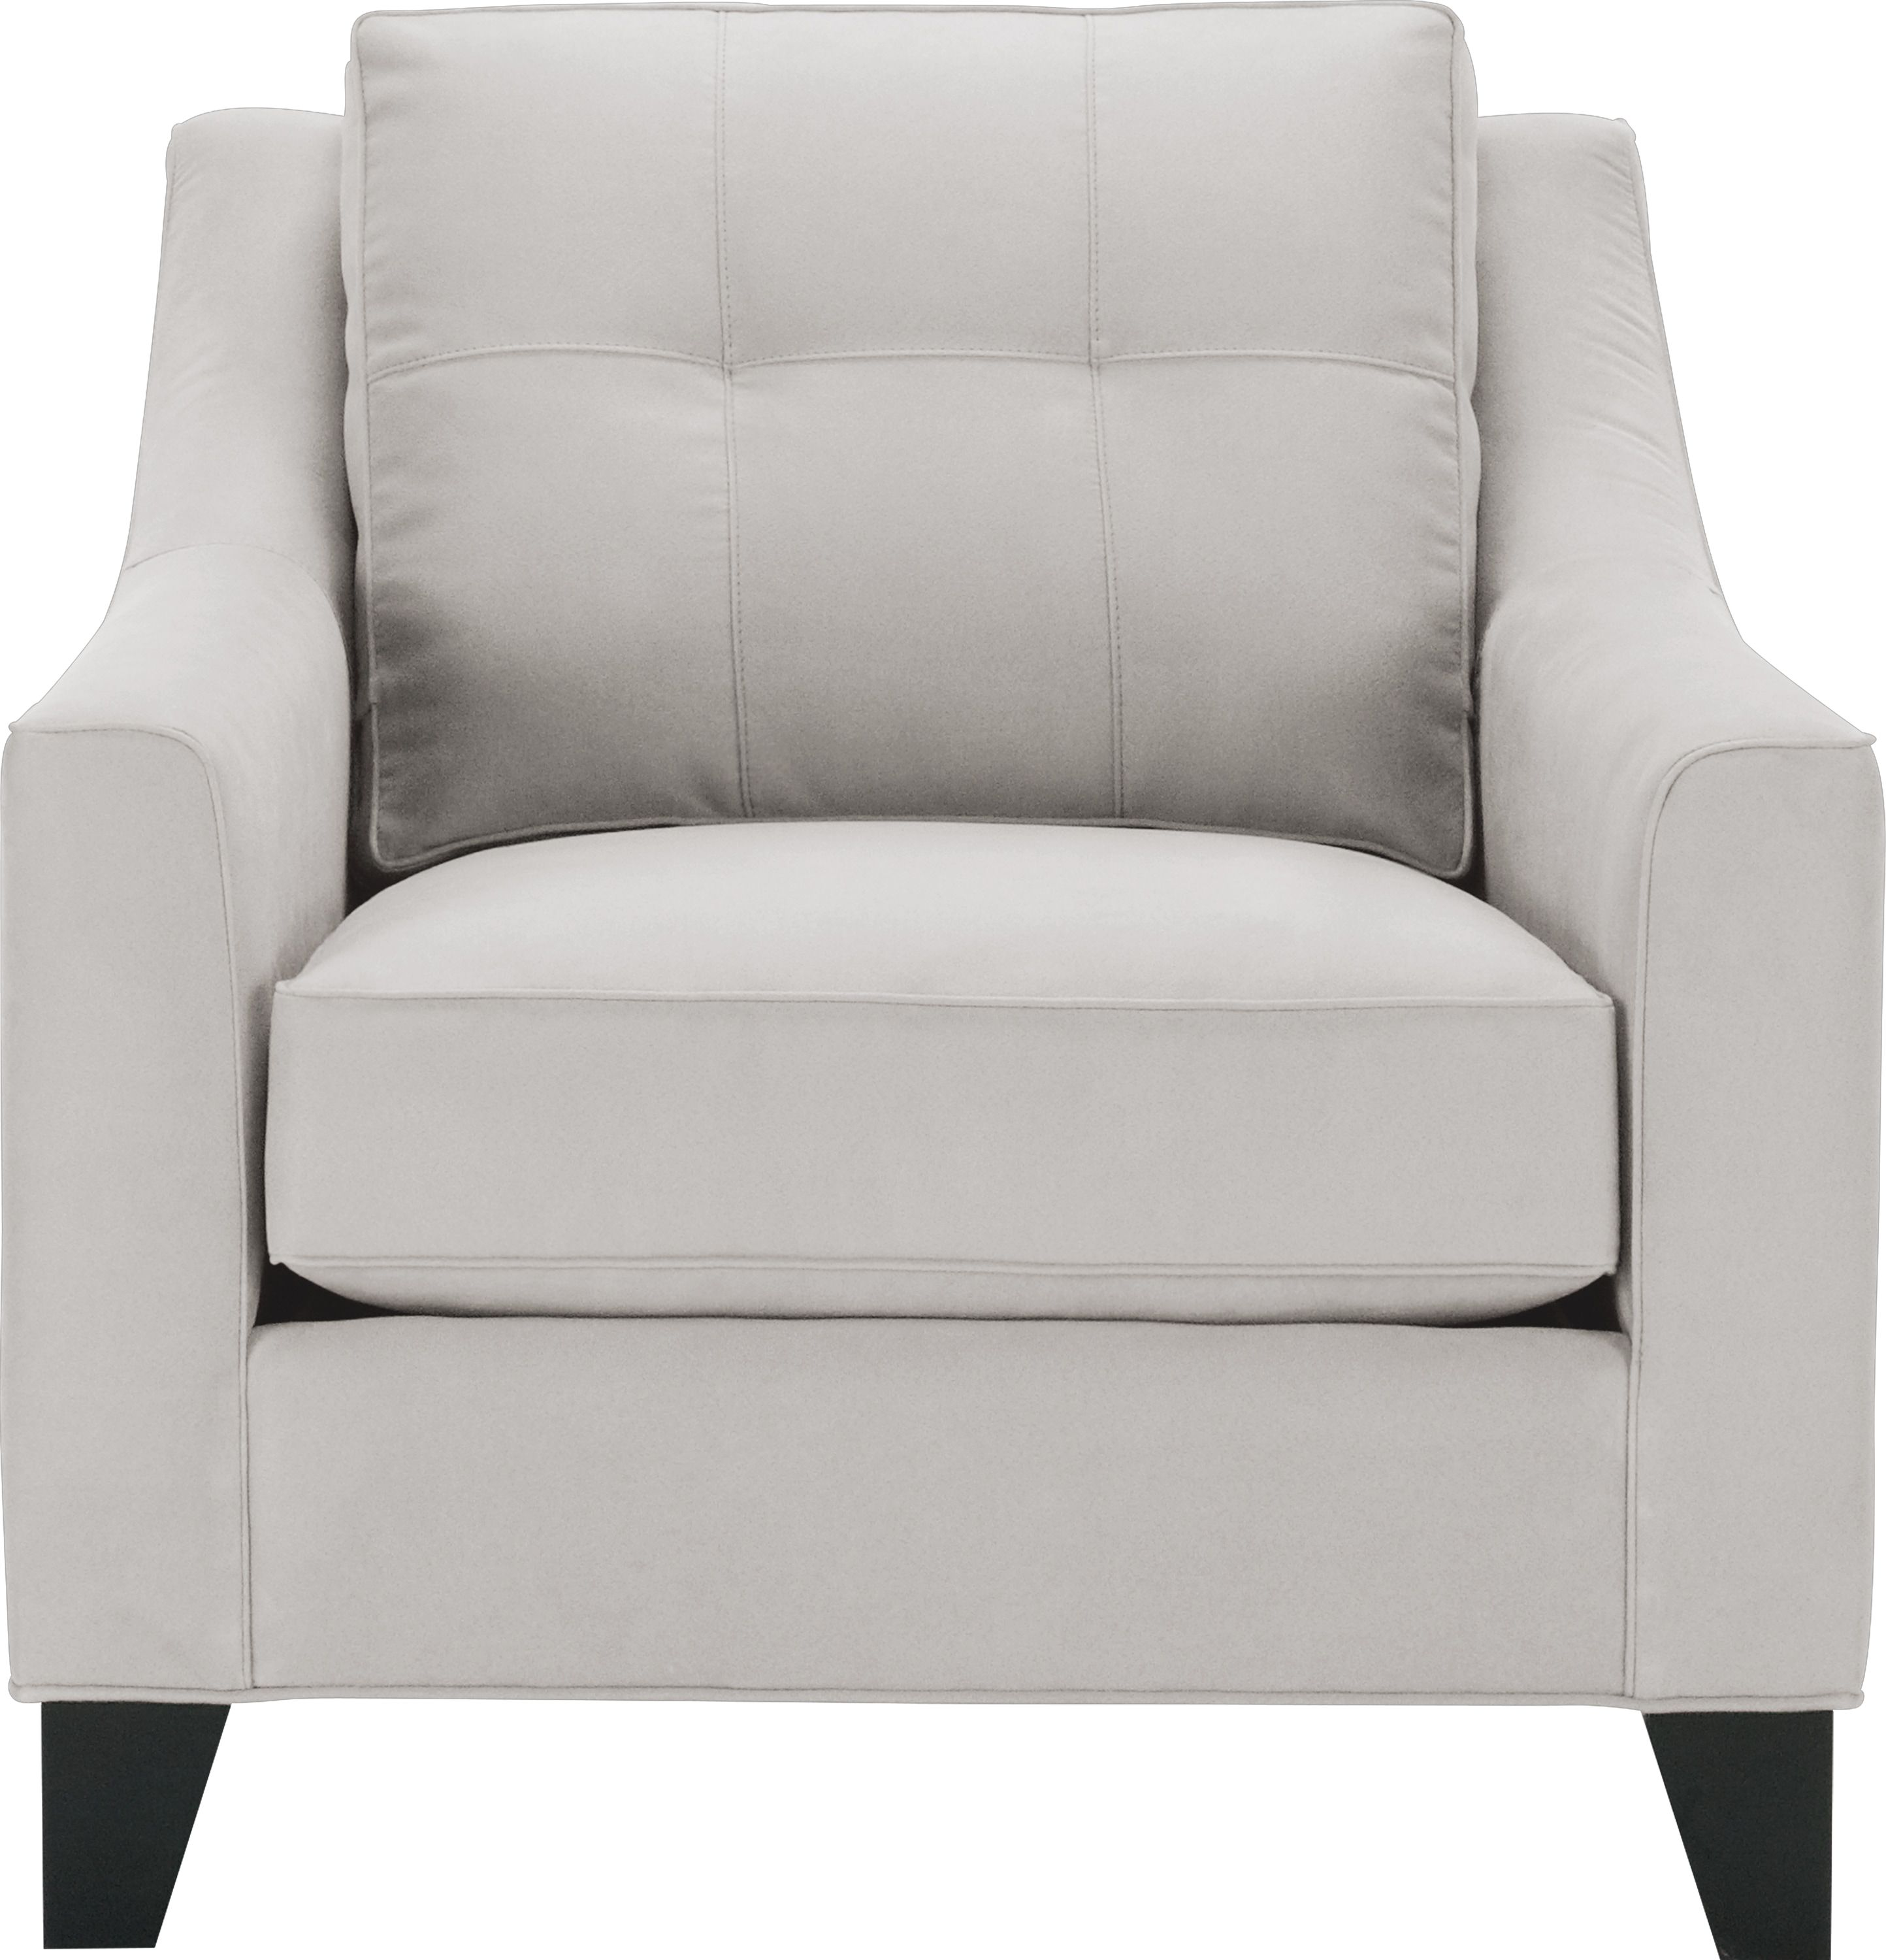 Cindy Crawford Home Madison Place Platinum Chair